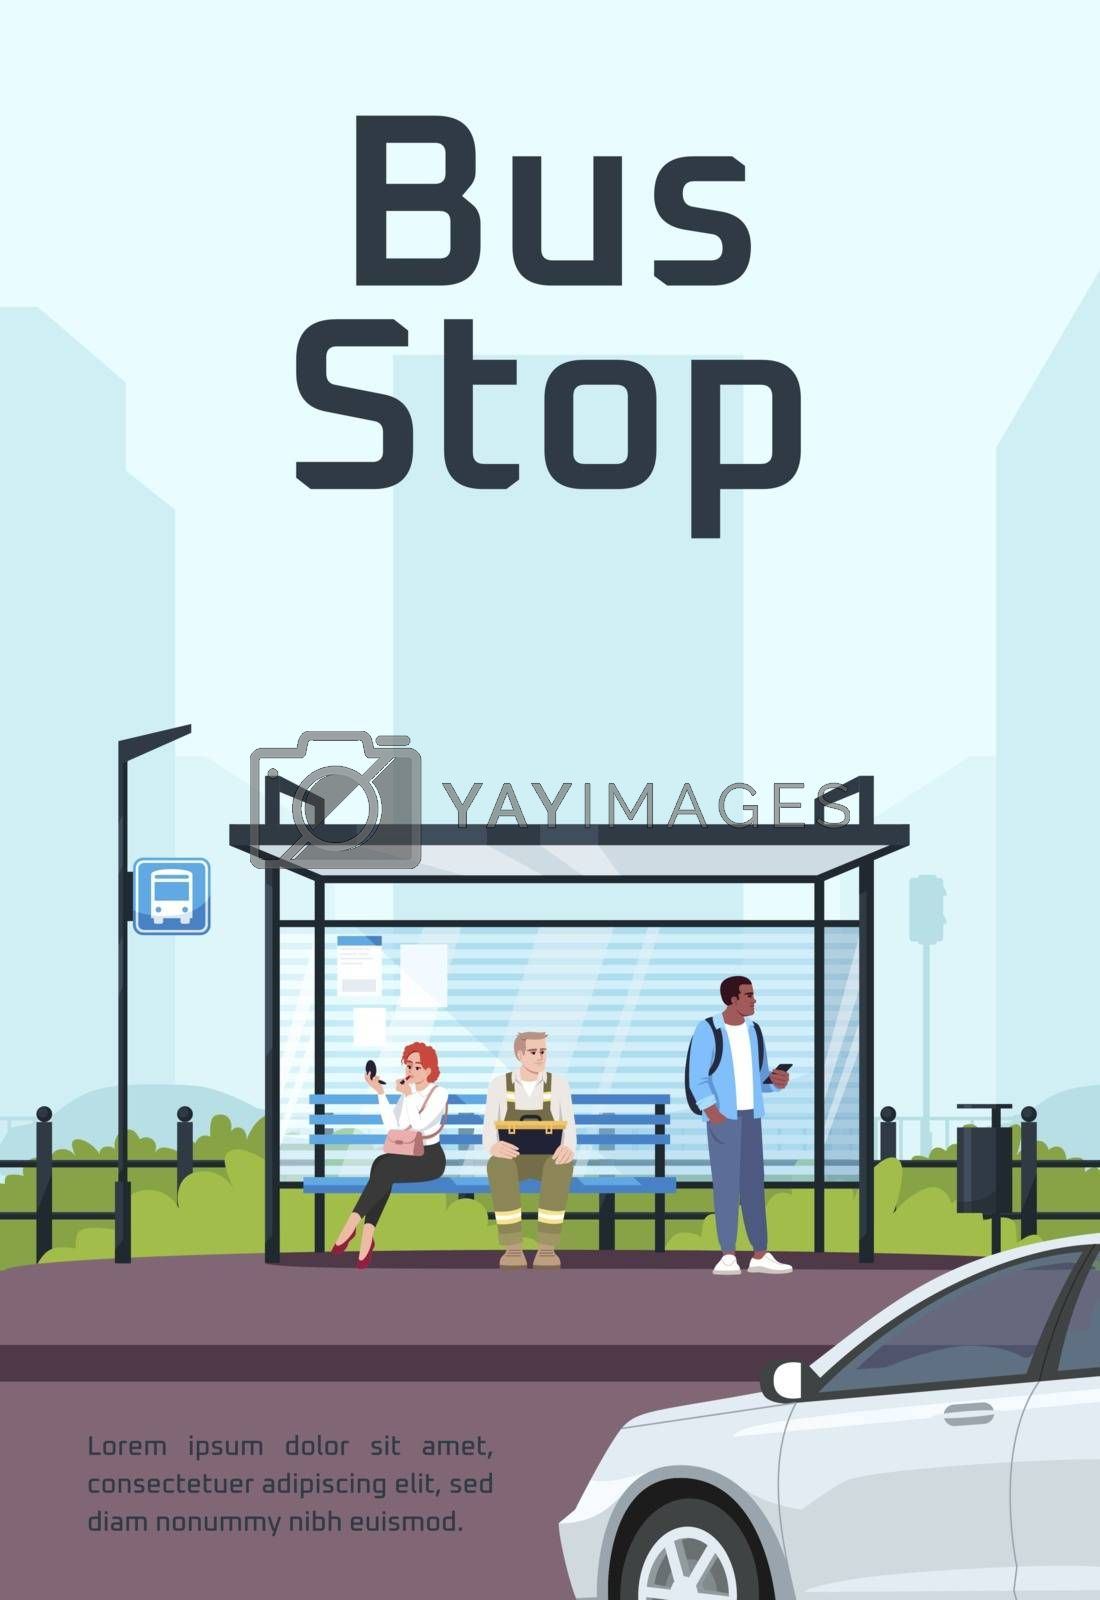 Bus stop poster template by bsd